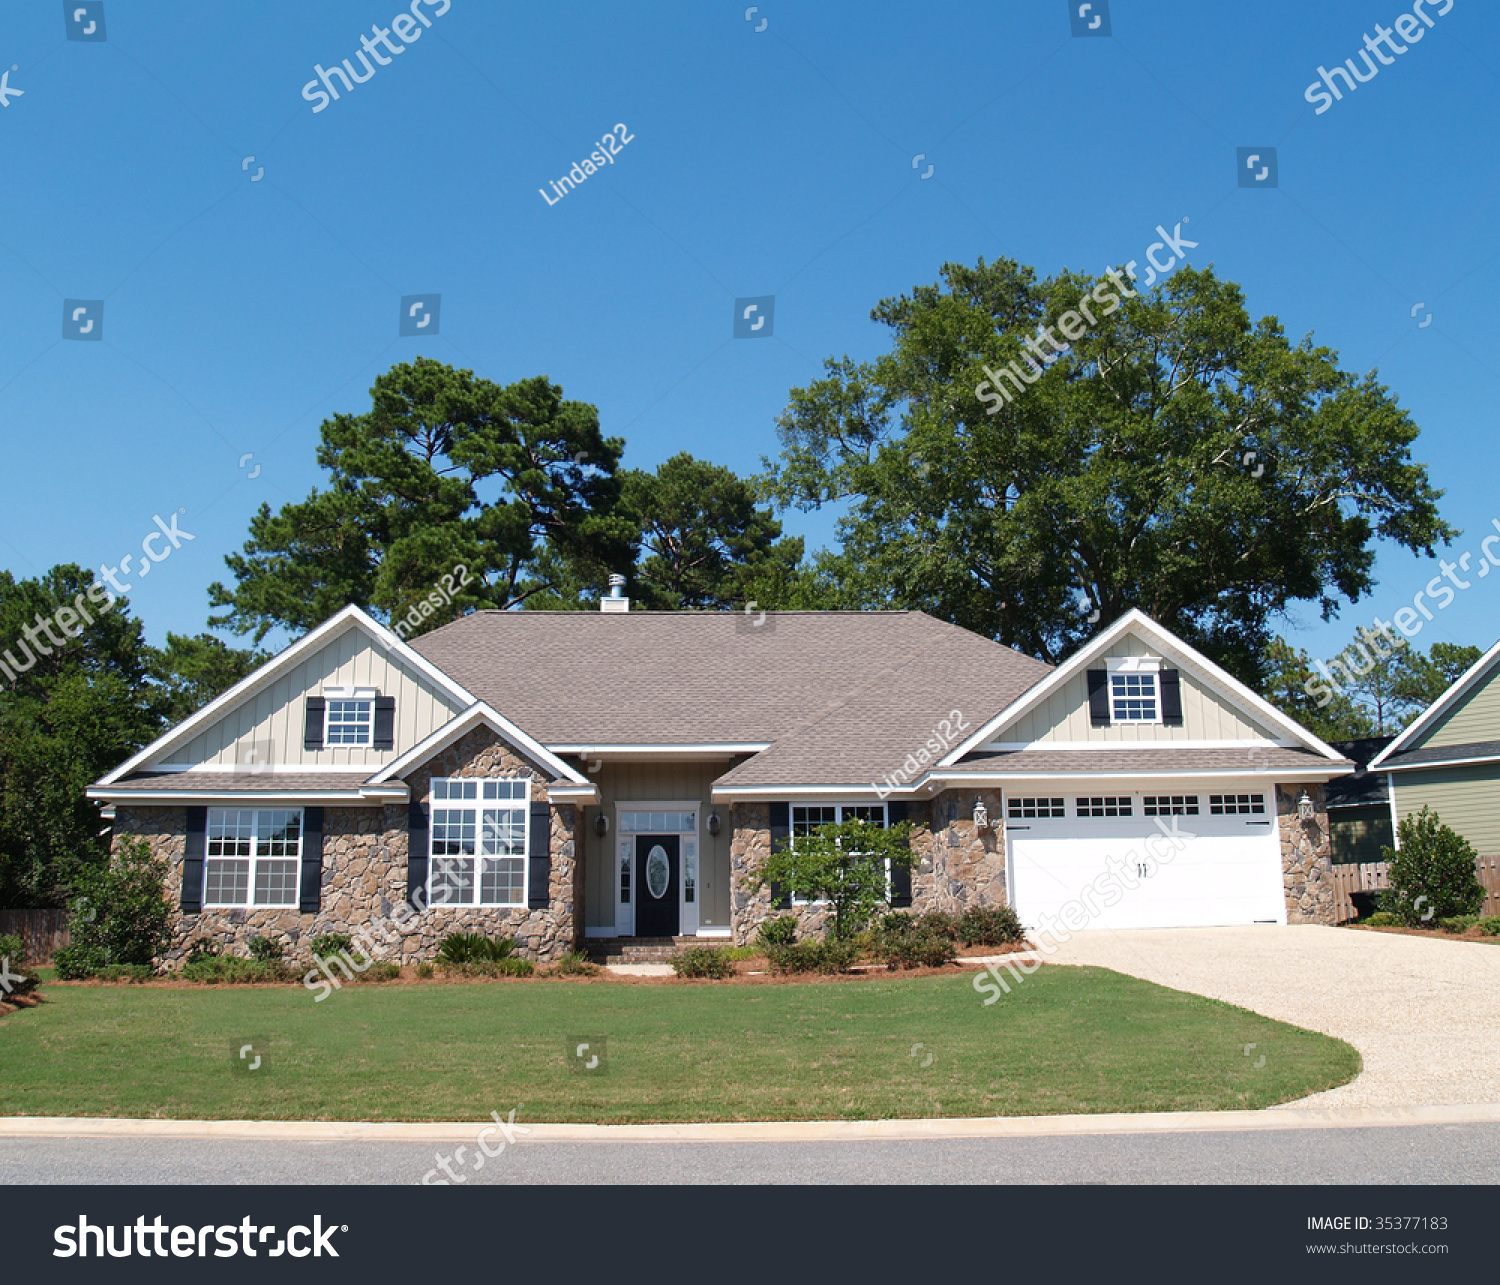 Stone Residence 1: One Story Residential Home Stone Facade Stock Photo